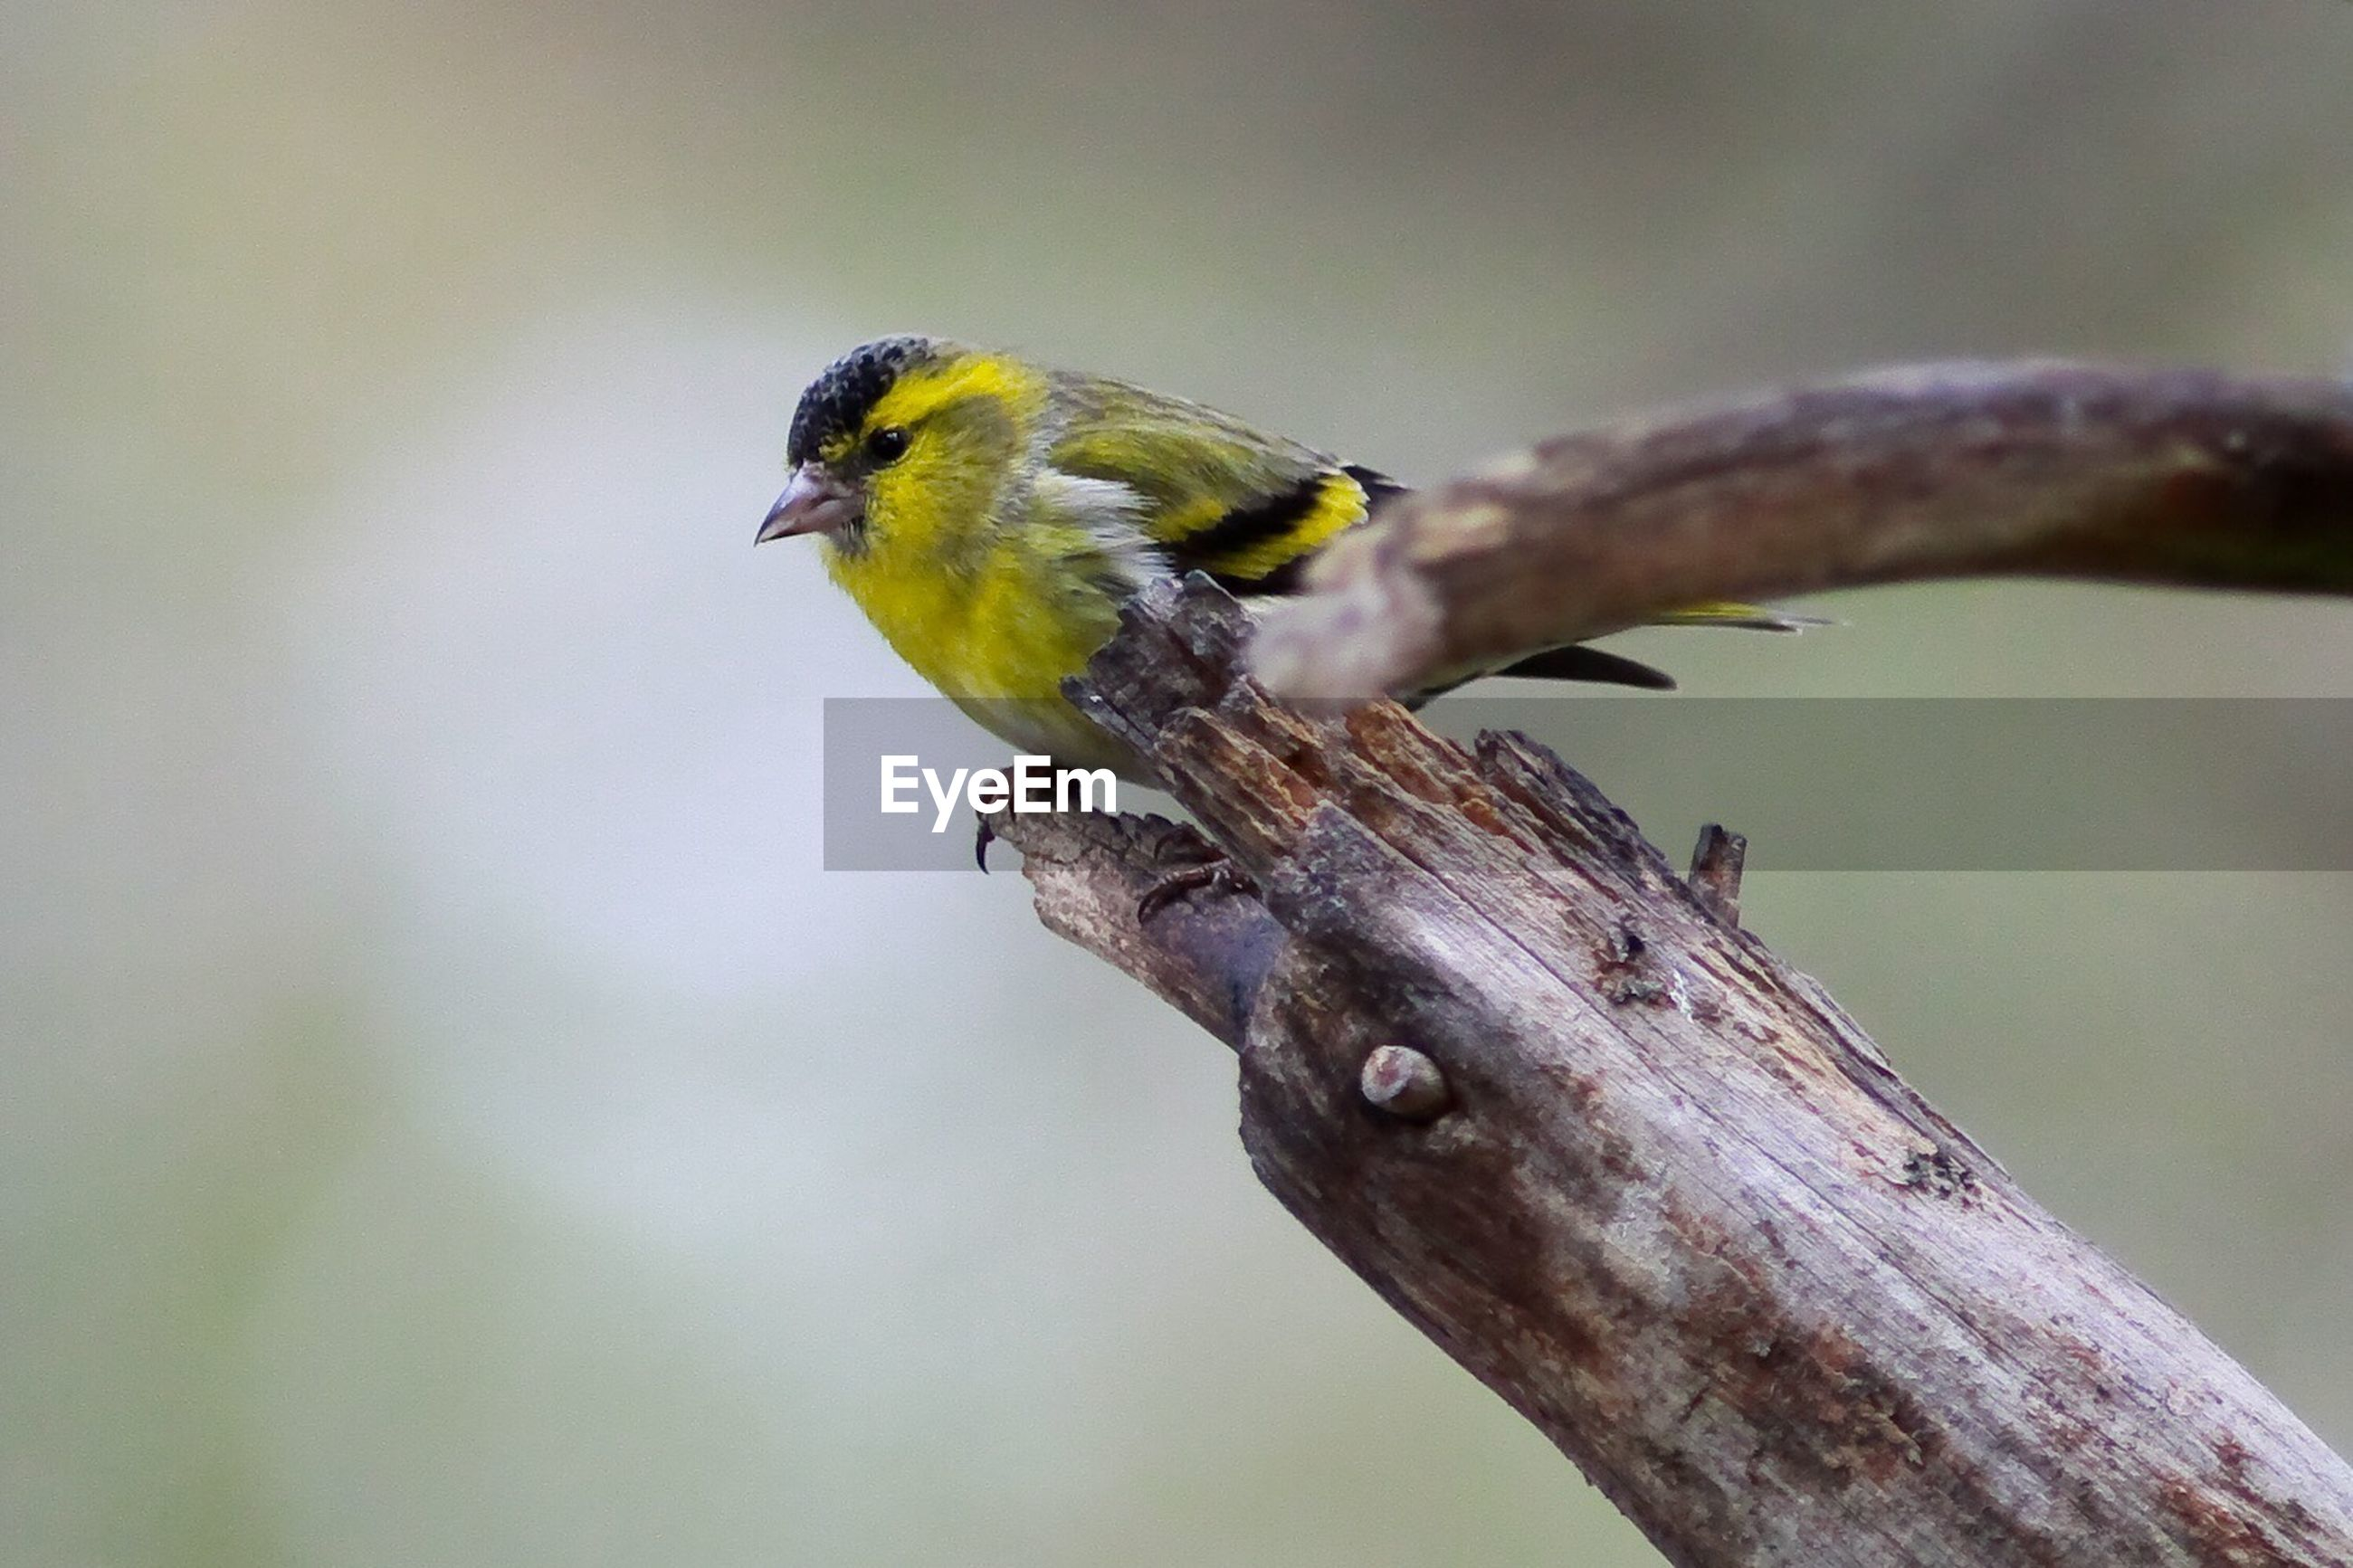 animal themes, animals in the wild, one animal, wildlife, focus on foreground, bird, close-up, perching, green color, selective focus, nature, full length, branch, side view, zoology, outdoors, no people, day, beauty in nature, two animals